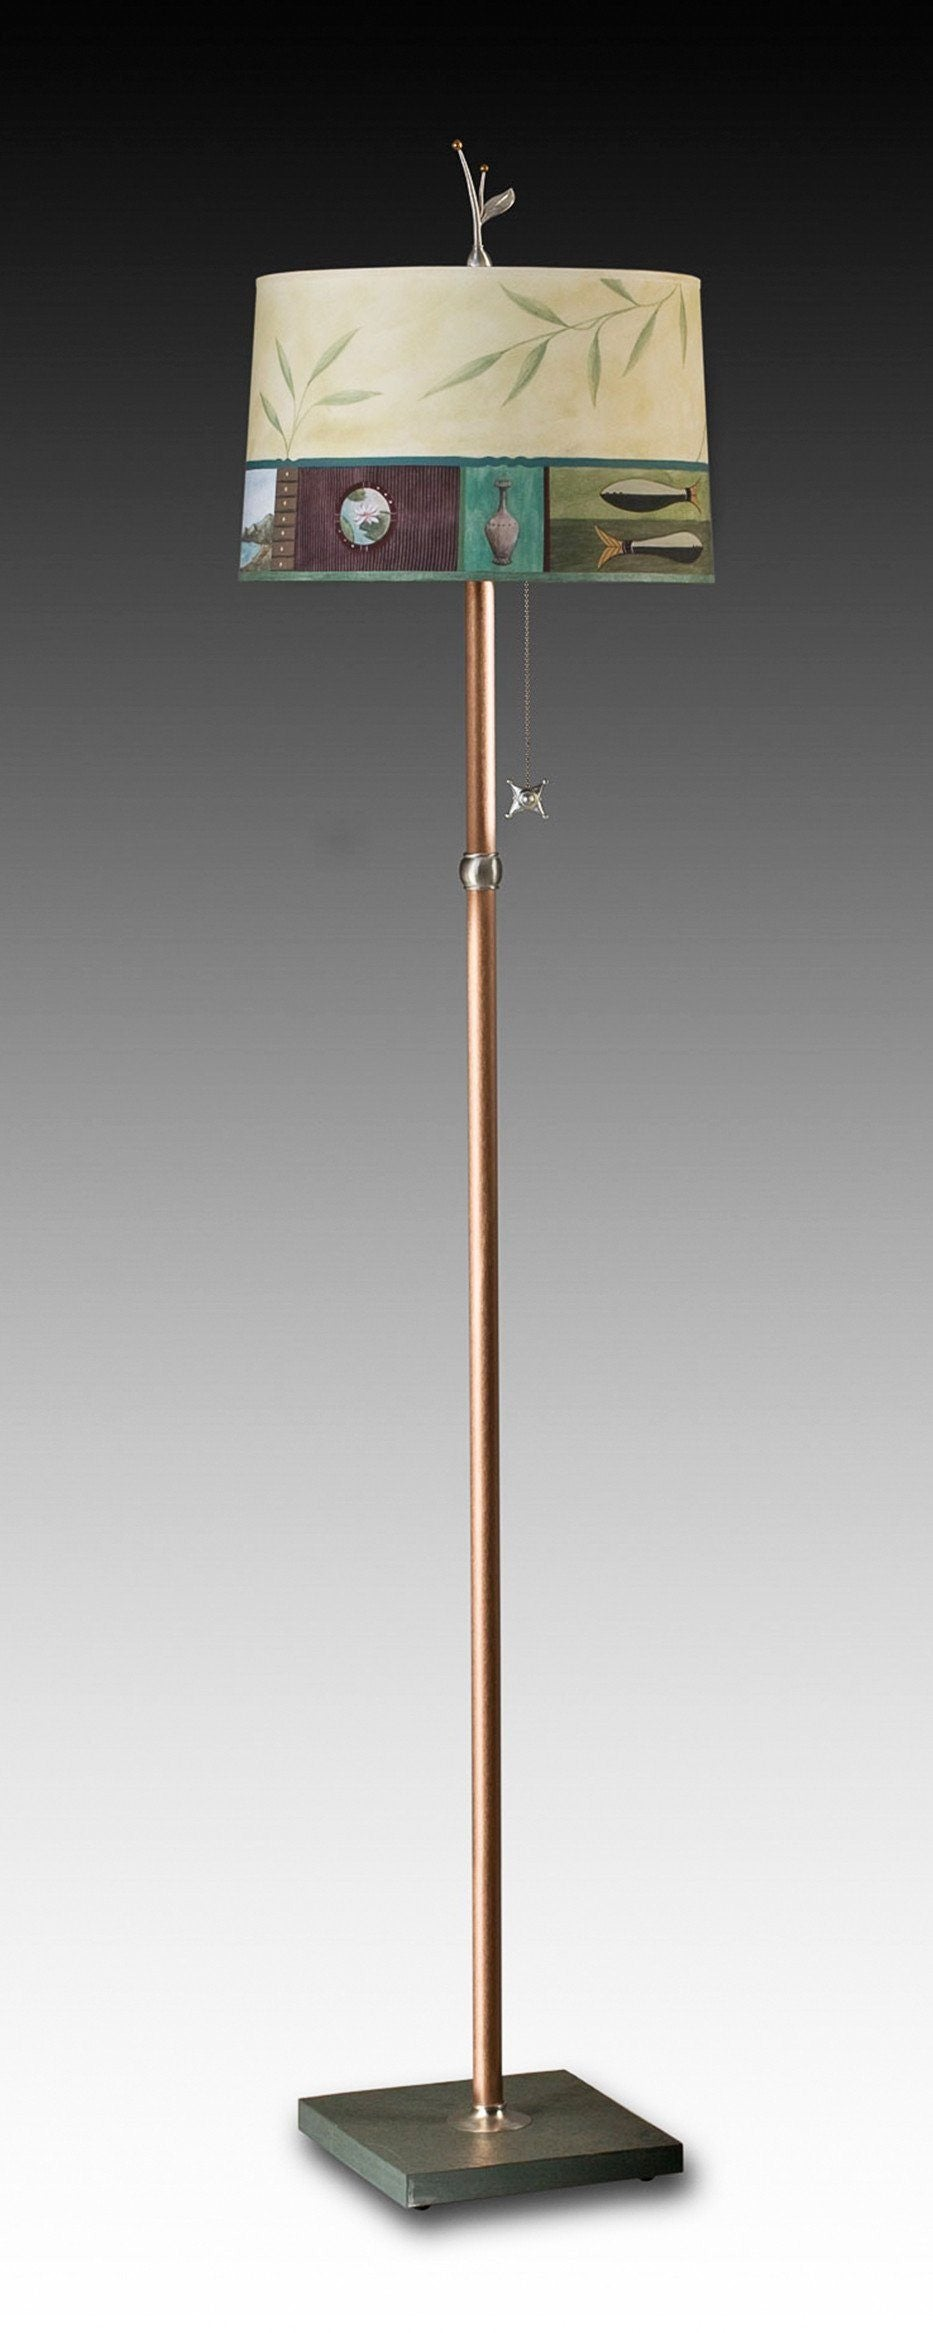 Copper Floor Lamp on Vermont Slate with Large Drum Shade in Twin Fish